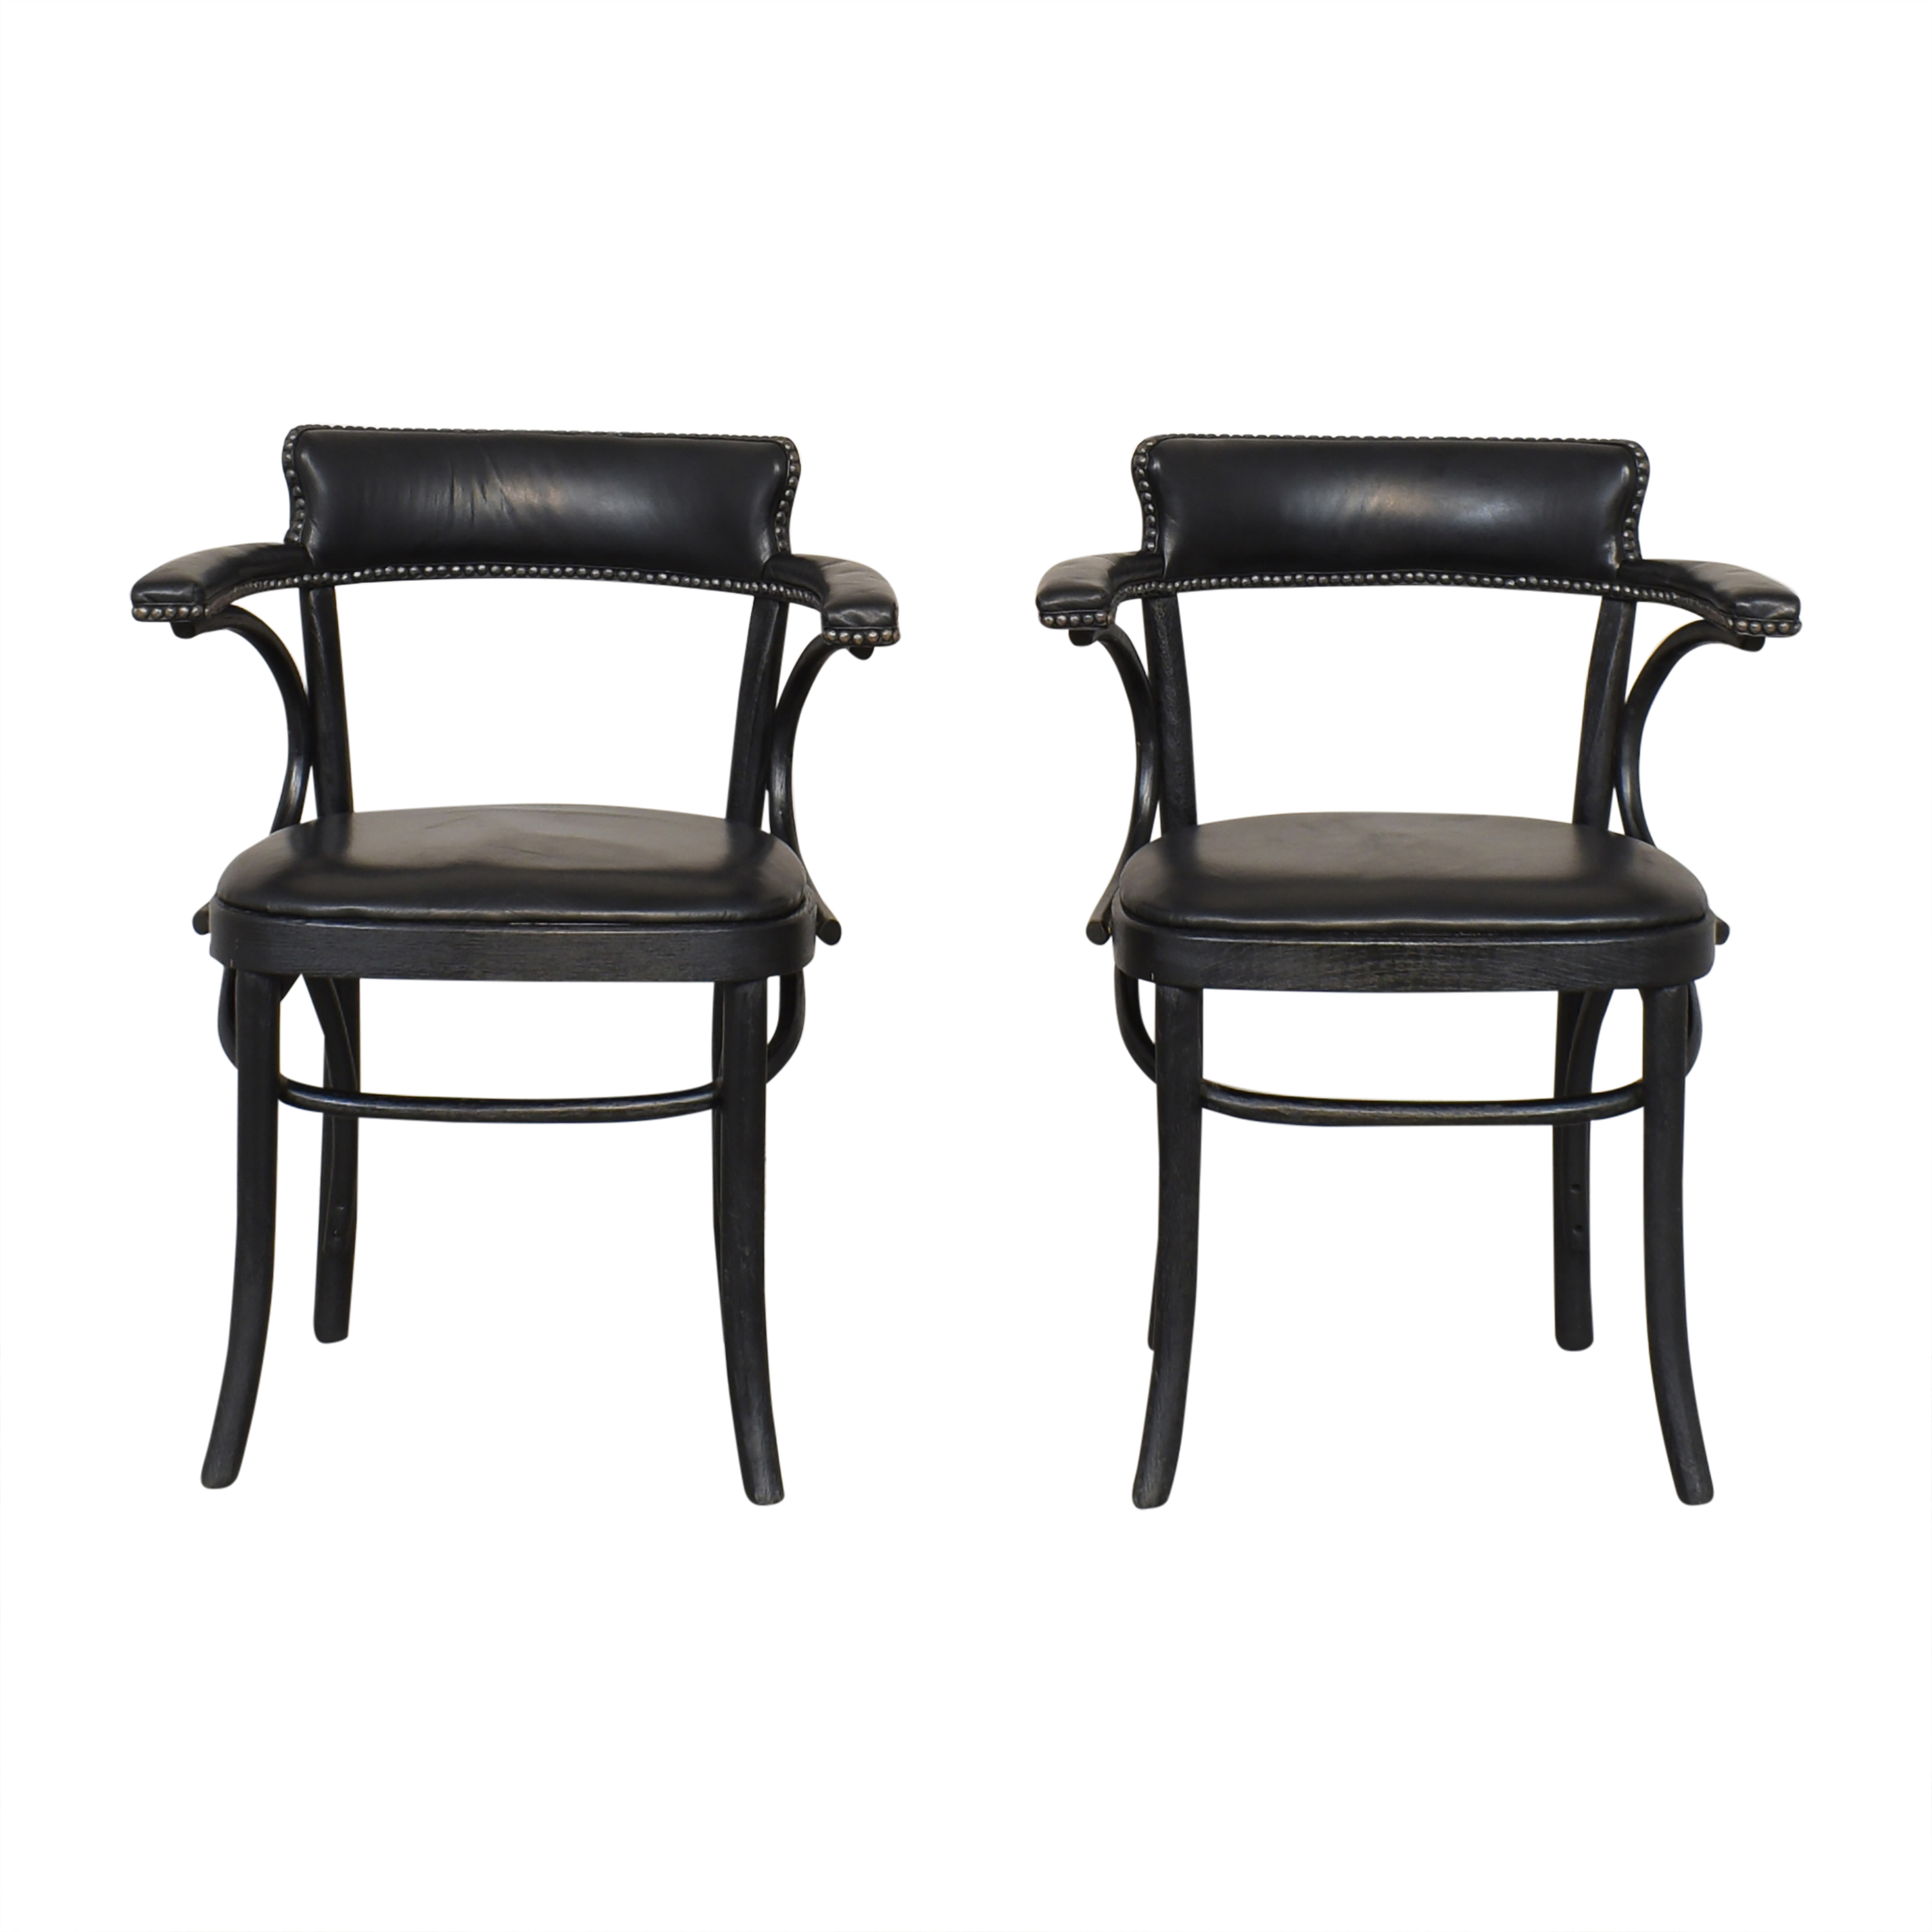 Restoration Hardware Restoration Hardware Vienna Cafe Armchairs used